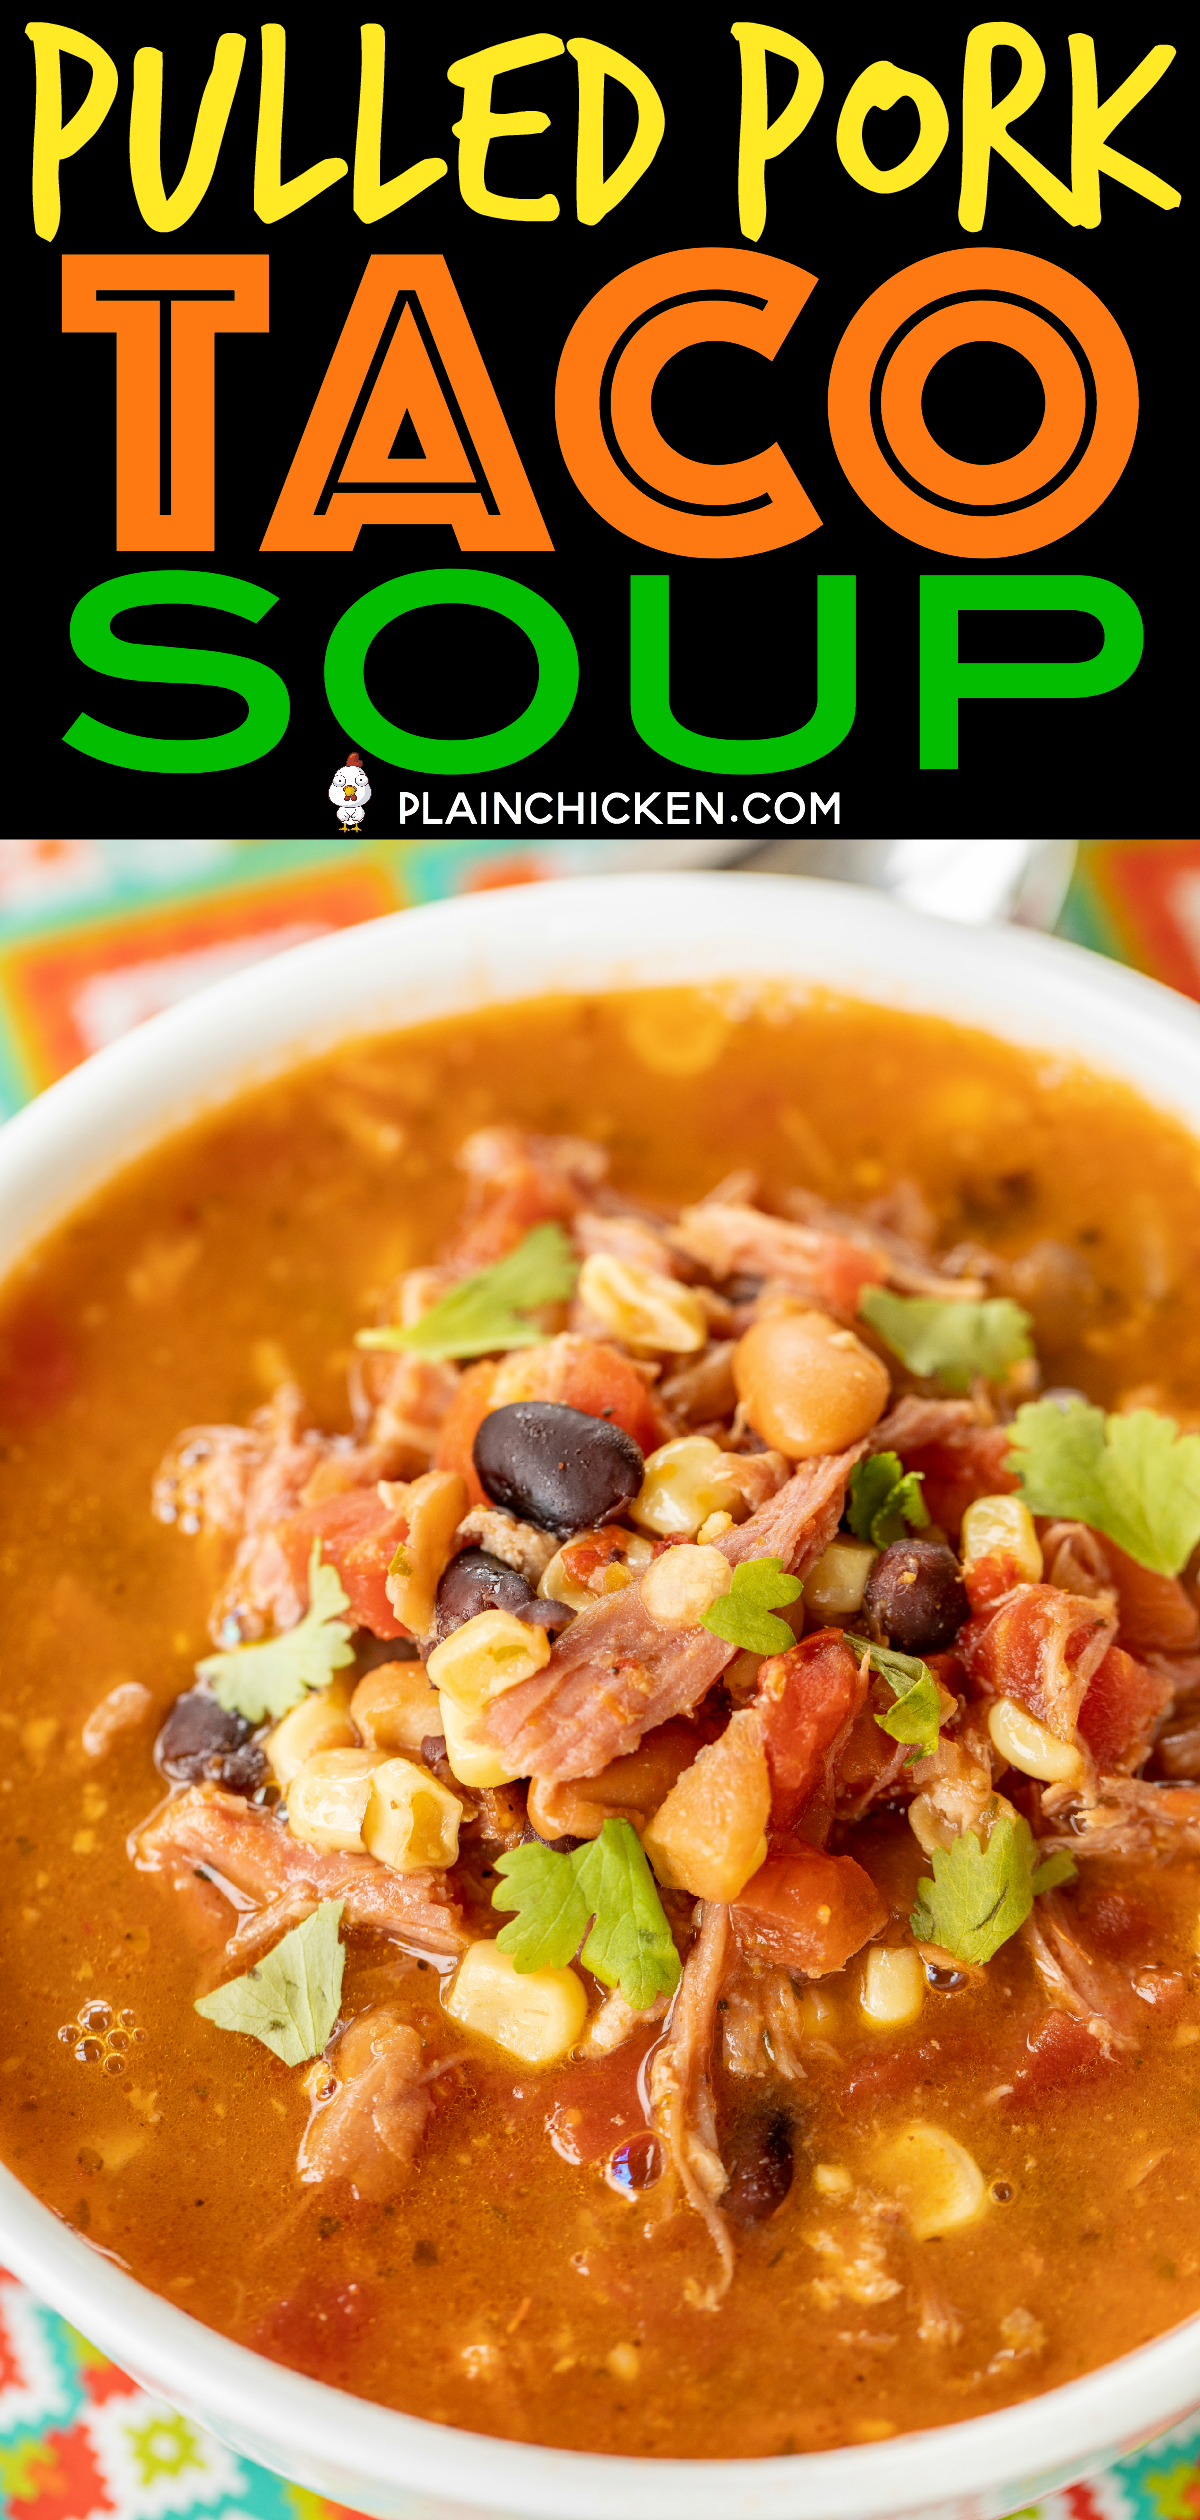 Pulled Pork Taco Soup - Plain Chicken